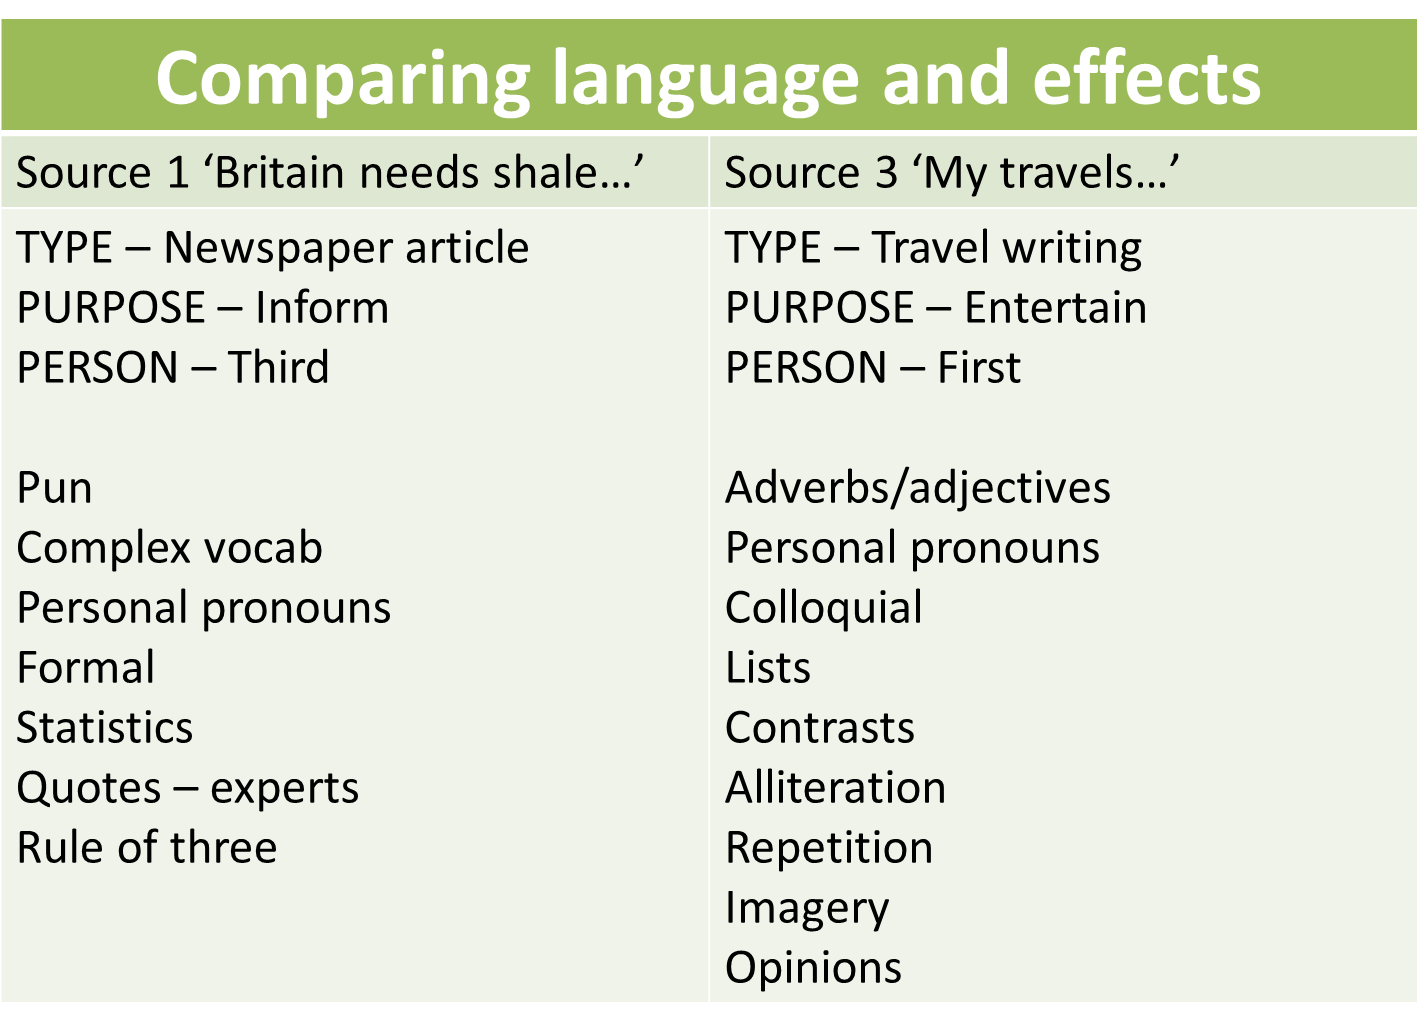 English Language Question 4 Comparing Language And